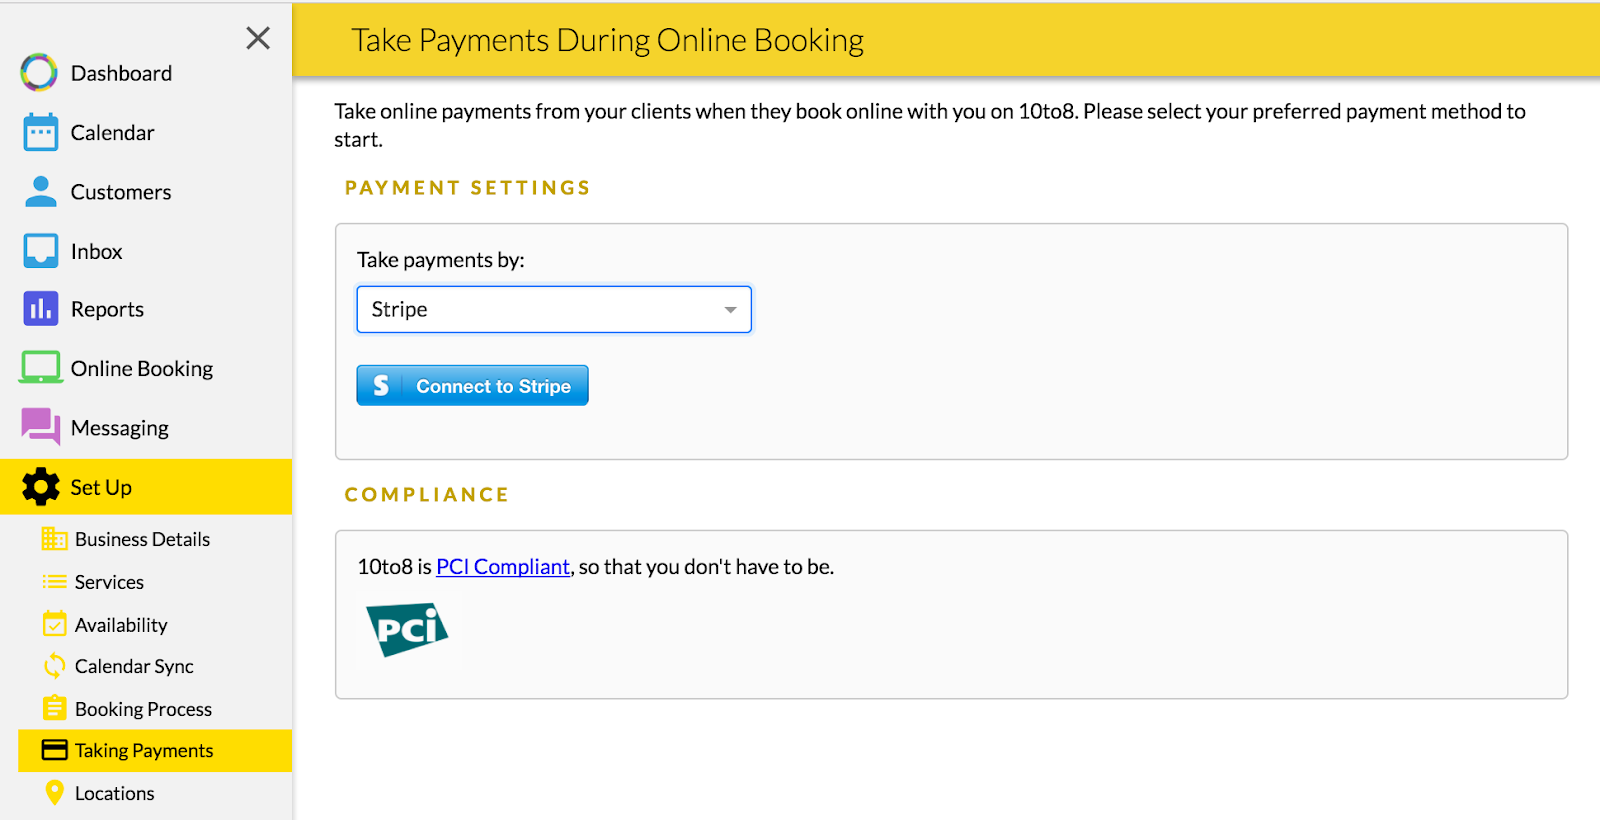 Taking payments